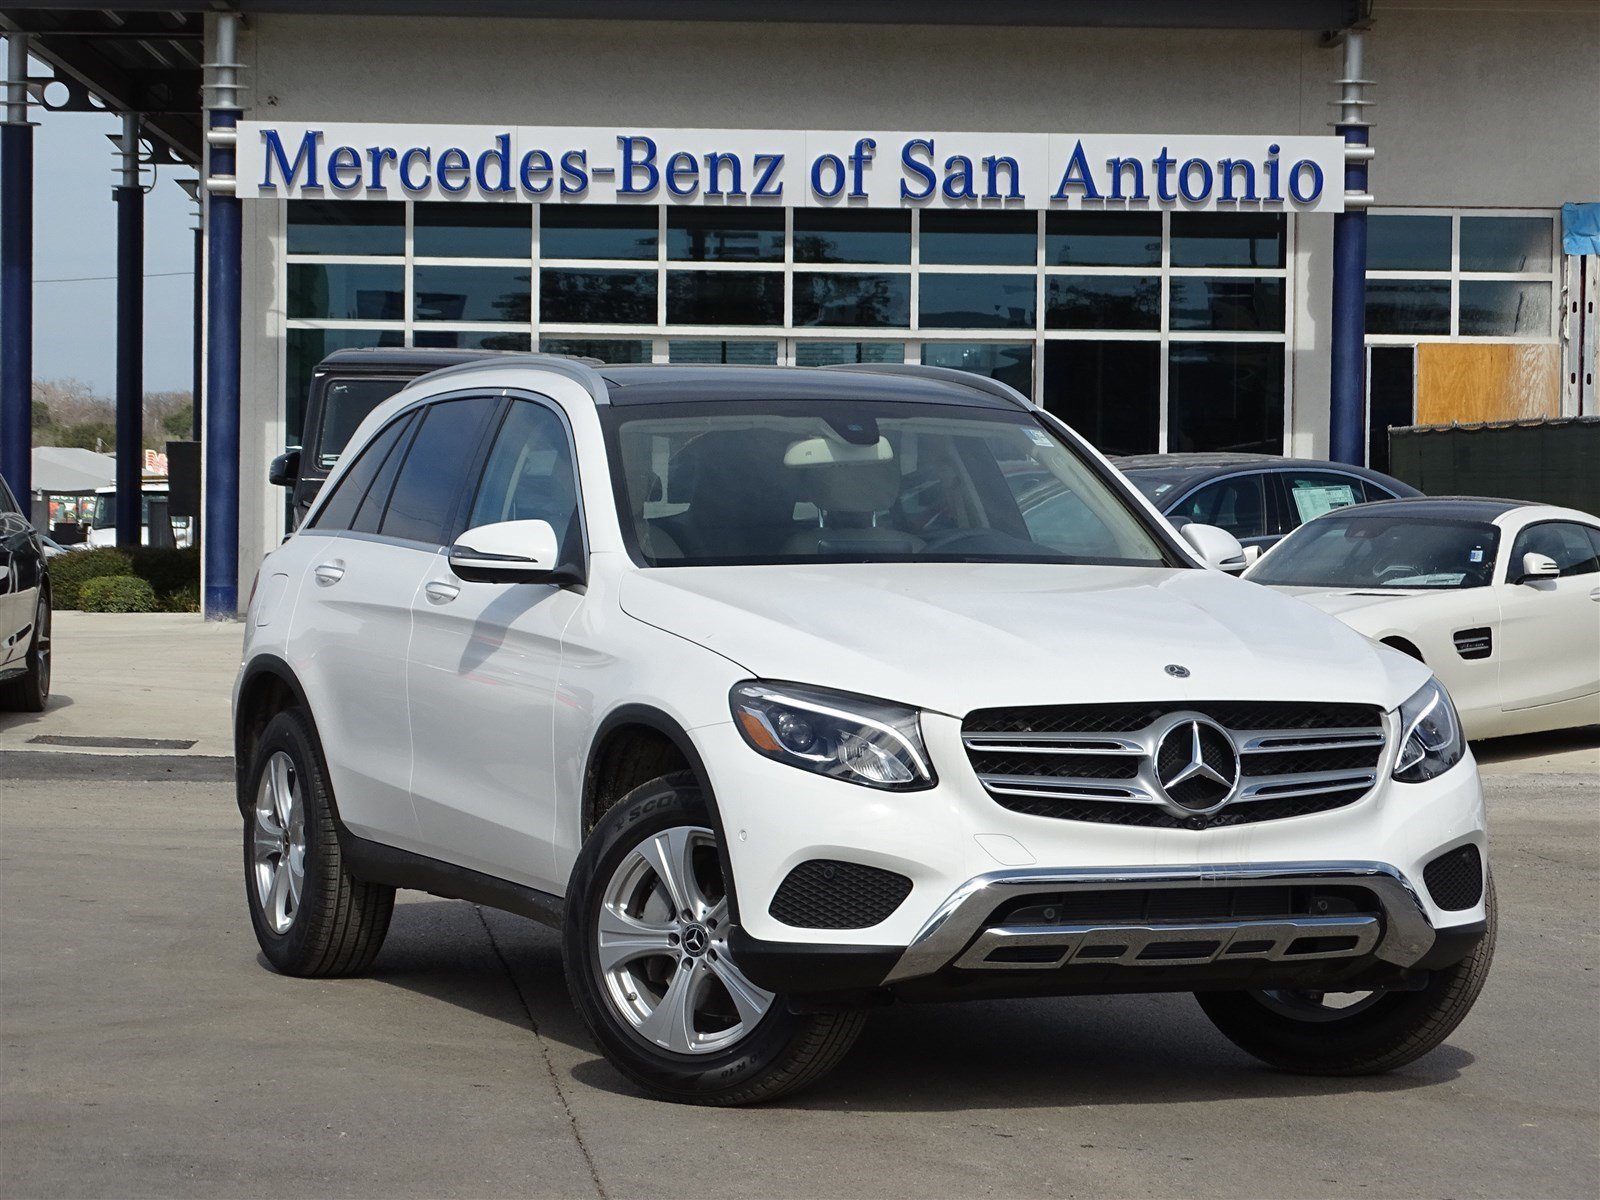 New 2018 Mercedes Benz GLC GLC 300 SUV in San Antonio N